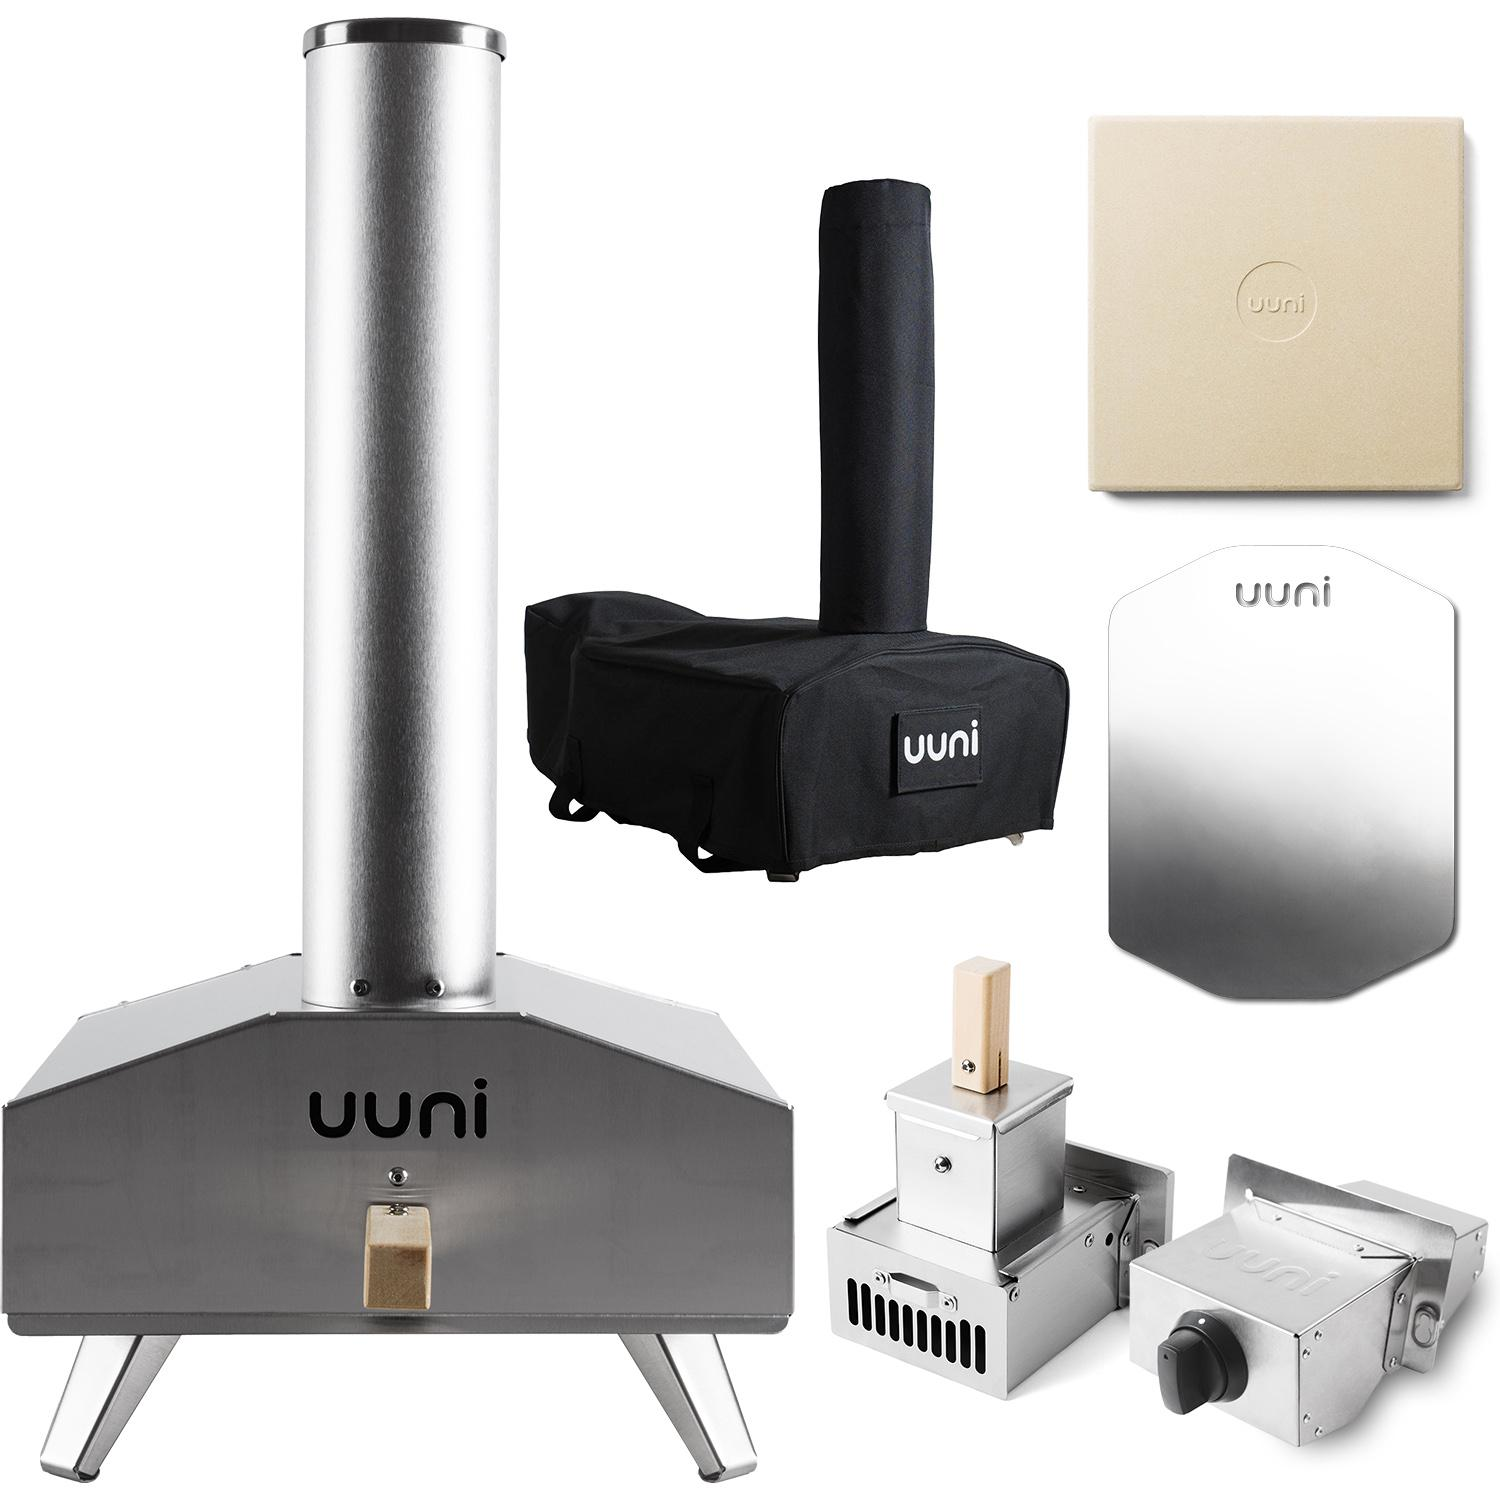 Ooni Uuni 3 Portable Outdoor Wood-Fired Pellet Pizza Oven Bundle W/ Gas Burner & Cover / Bag - Stainless Steel - UUNI-3A + UU-P02700 + UUNI-C0VER-3A